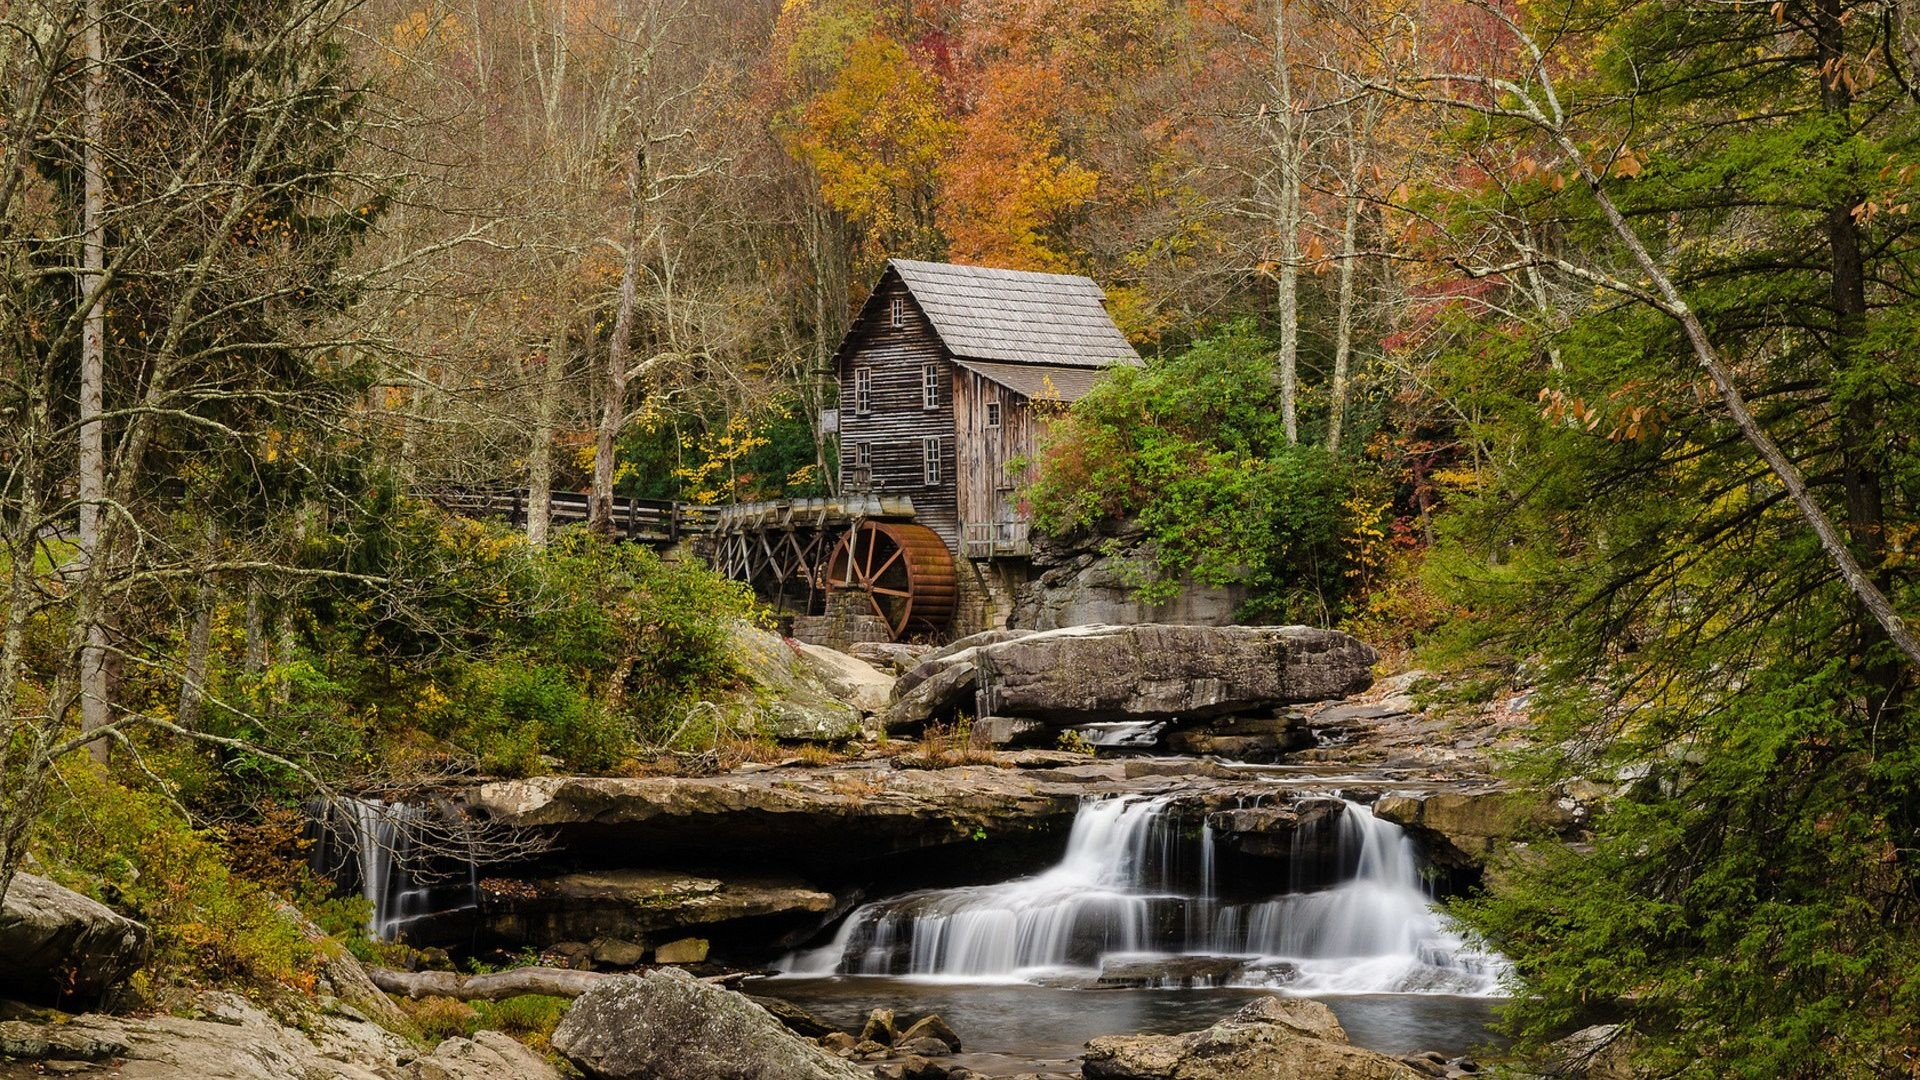 Autumn Tag – Seasons Landscapes Forest Scenic Streams Fall Nature Rivers  Mill Autumn Wallpapers Hd Full